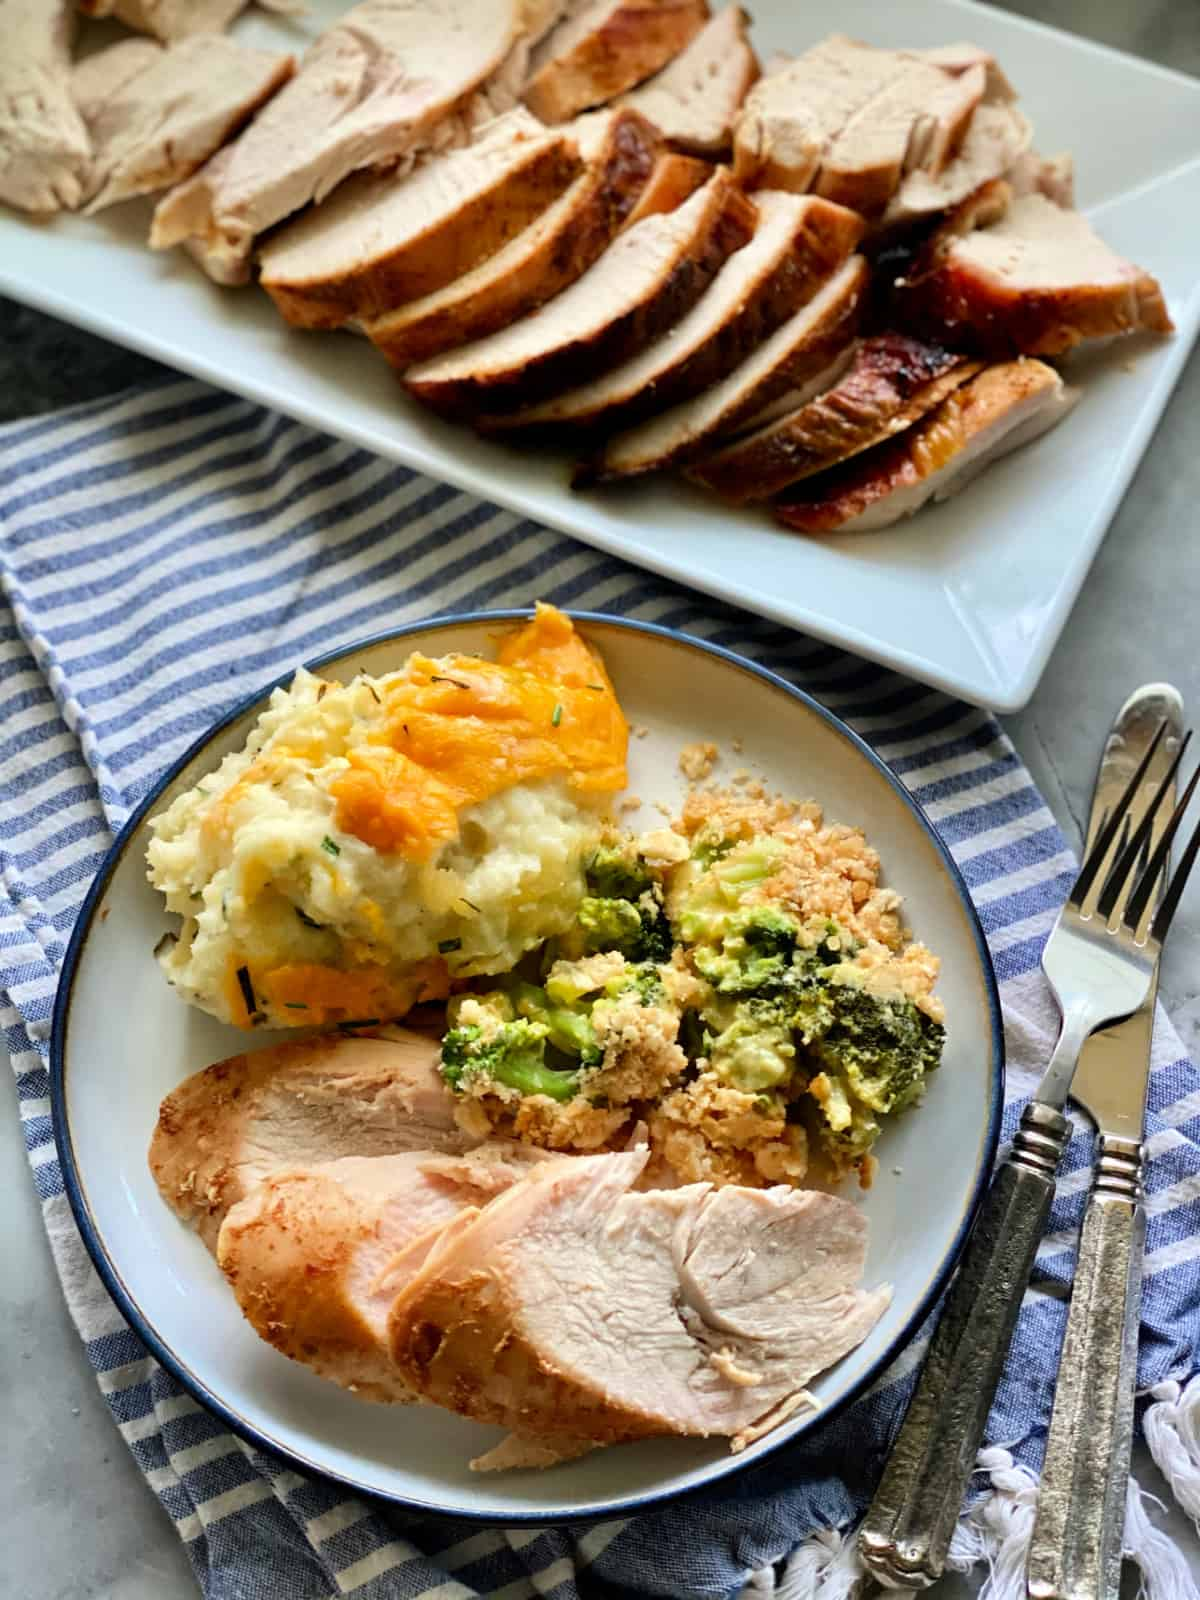 Top view of sliced turkey breast, mashed potatoes, and broccoli casserole with silverware on the side and platter of turkey next to the plate.